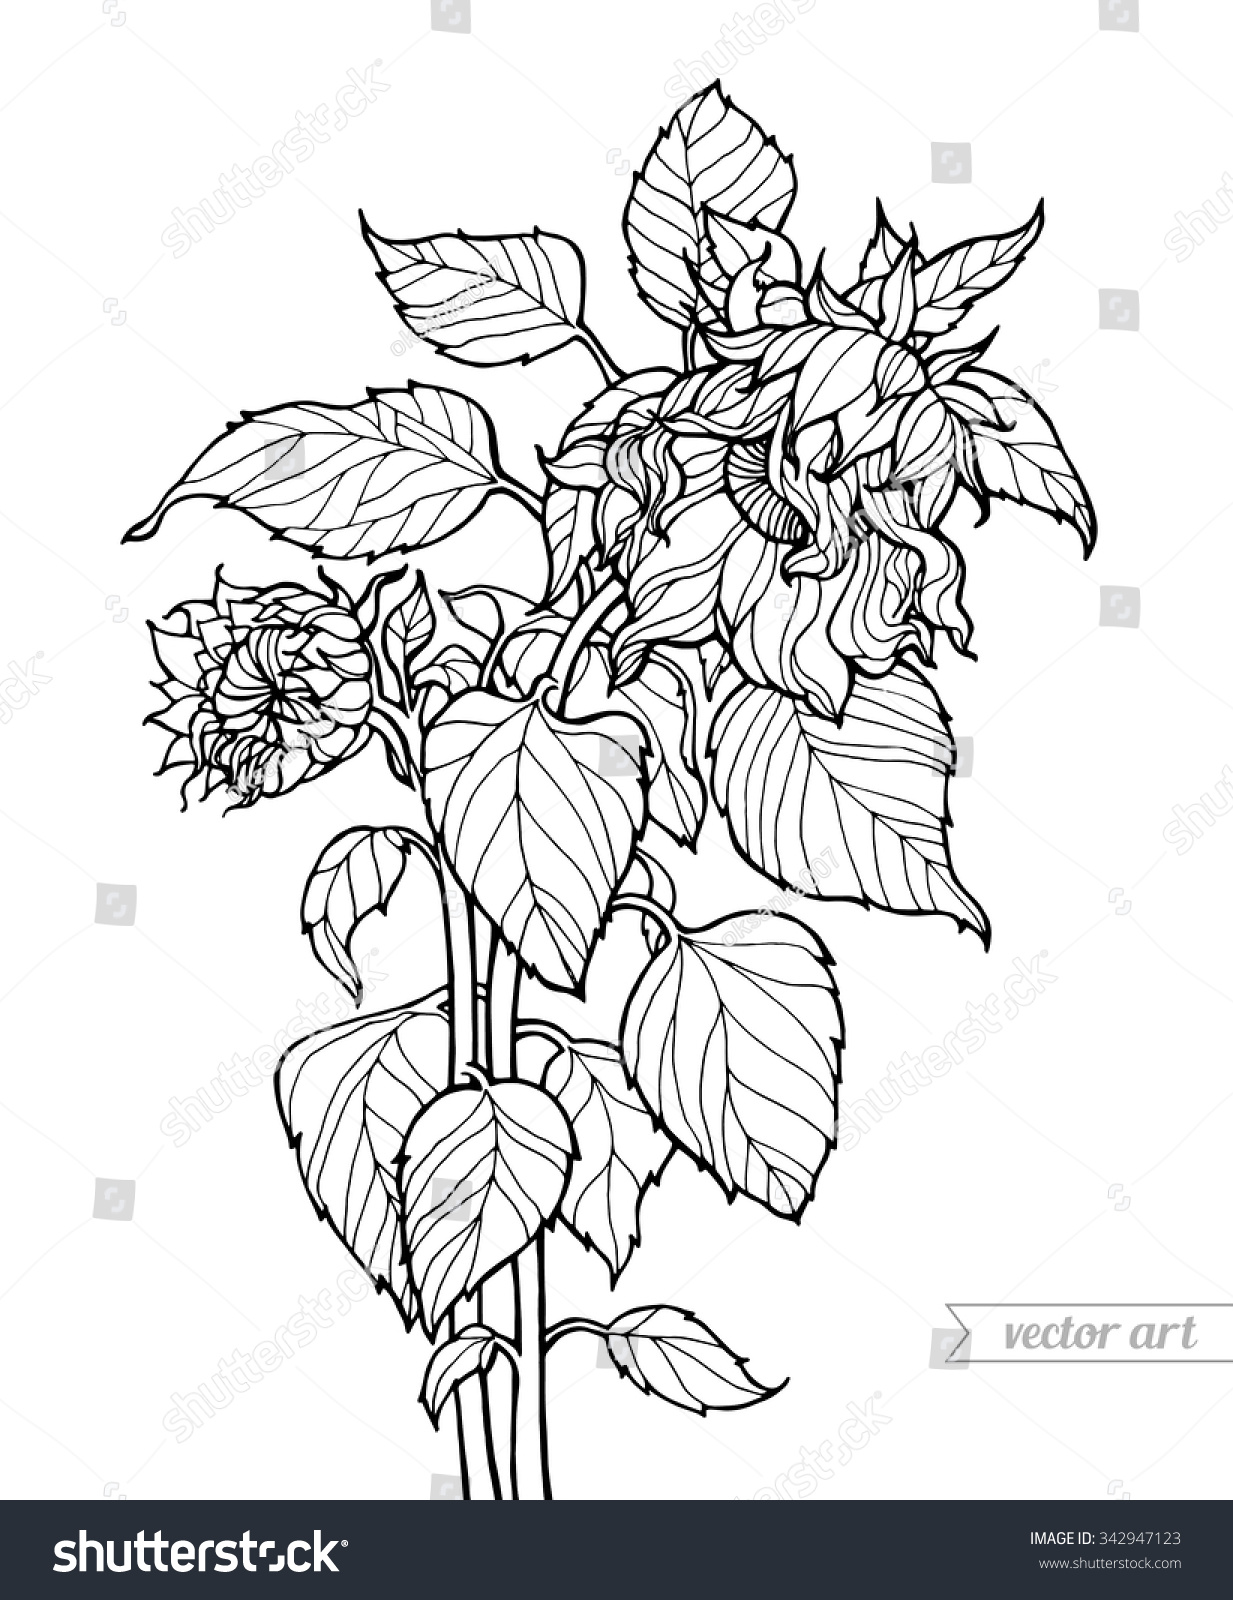 Clip Art Botany Coloring Pages botany coloring book eassume com pages eassume